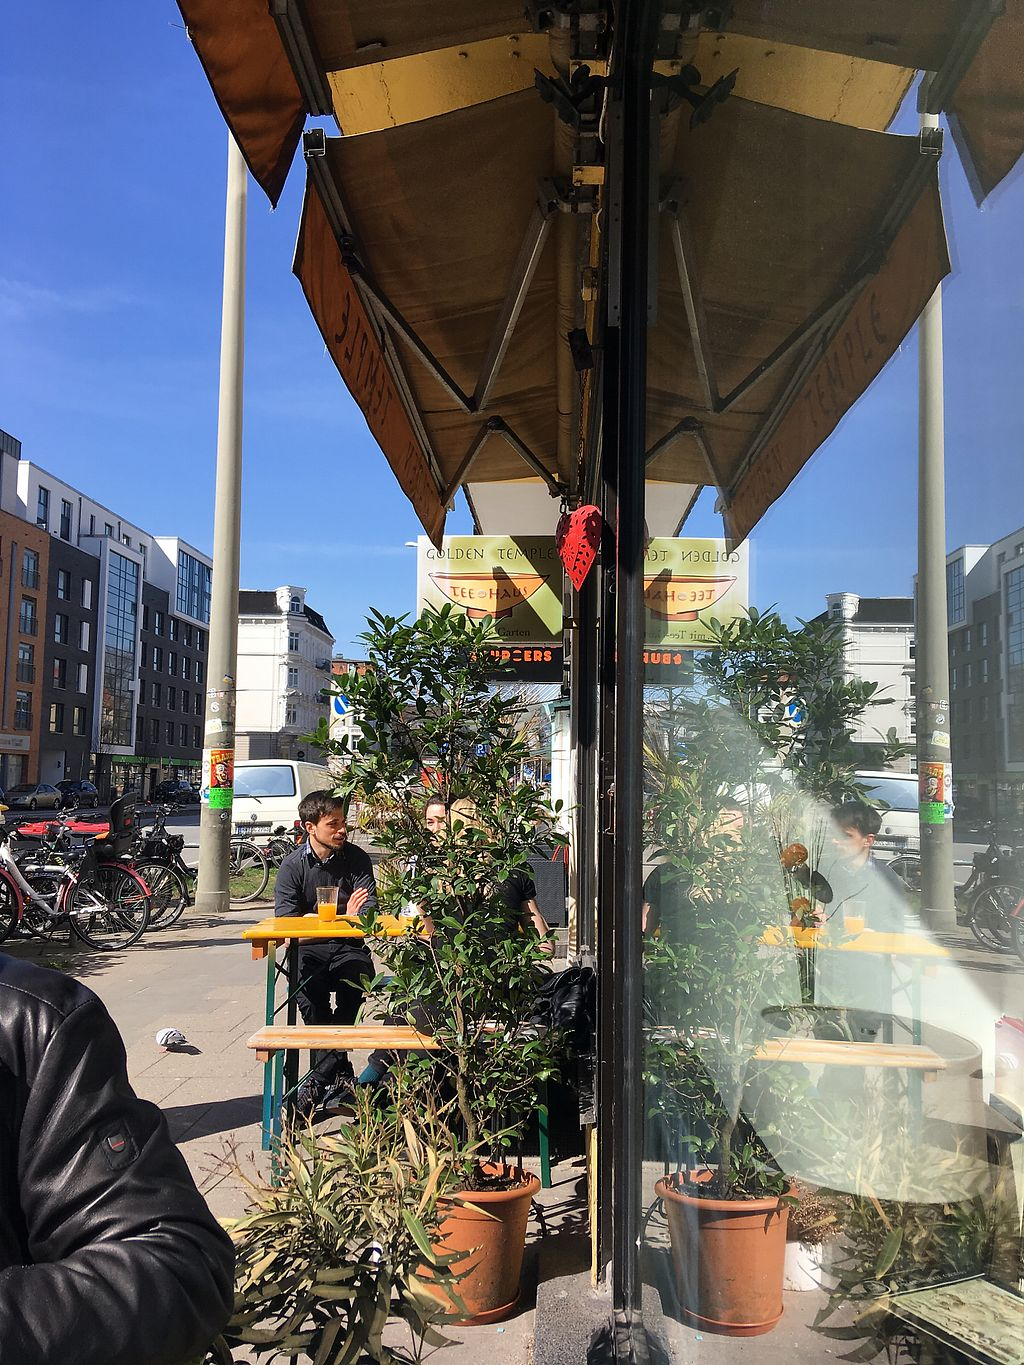 """Photo of Golden Temple Teehaus  by <a href=""""/members/profile/Delusa"""">Delusa</a> <br/>A few table outside, perfect with nice weather <br/> April 6, 2018  - <a href='/contact/abuse/image/20660/381530'>Report</a>"""